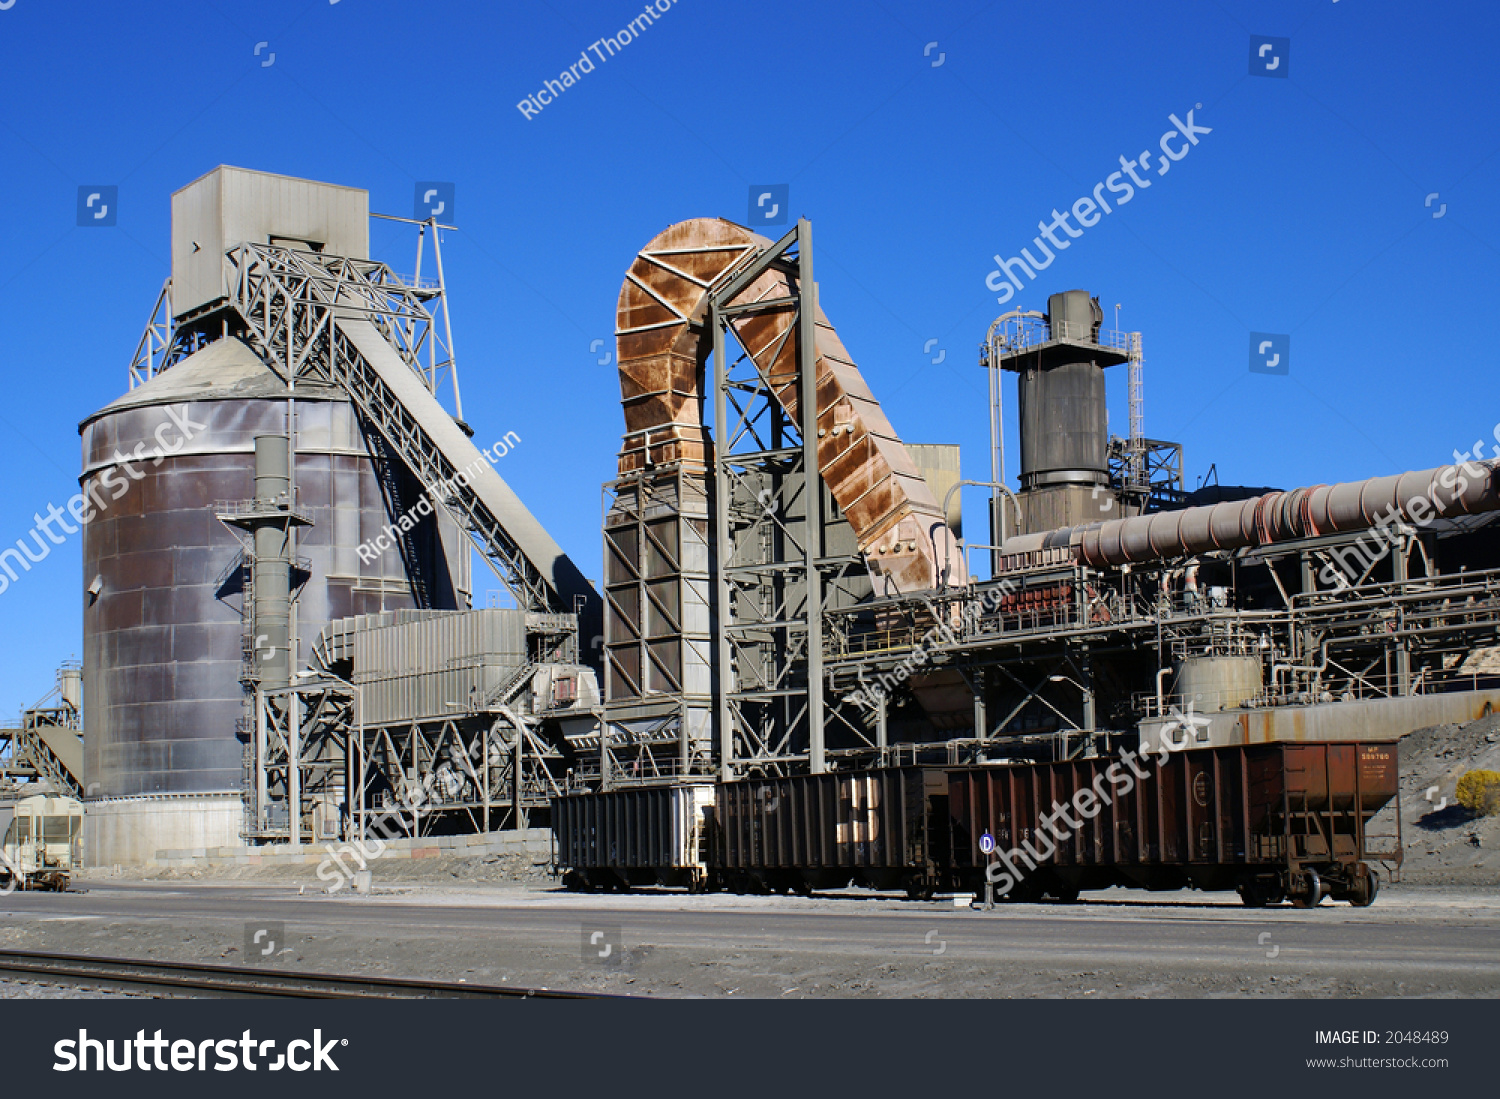 Cement Manufacturing Plants : Cement manufacturing plant stock photo  shutterstock